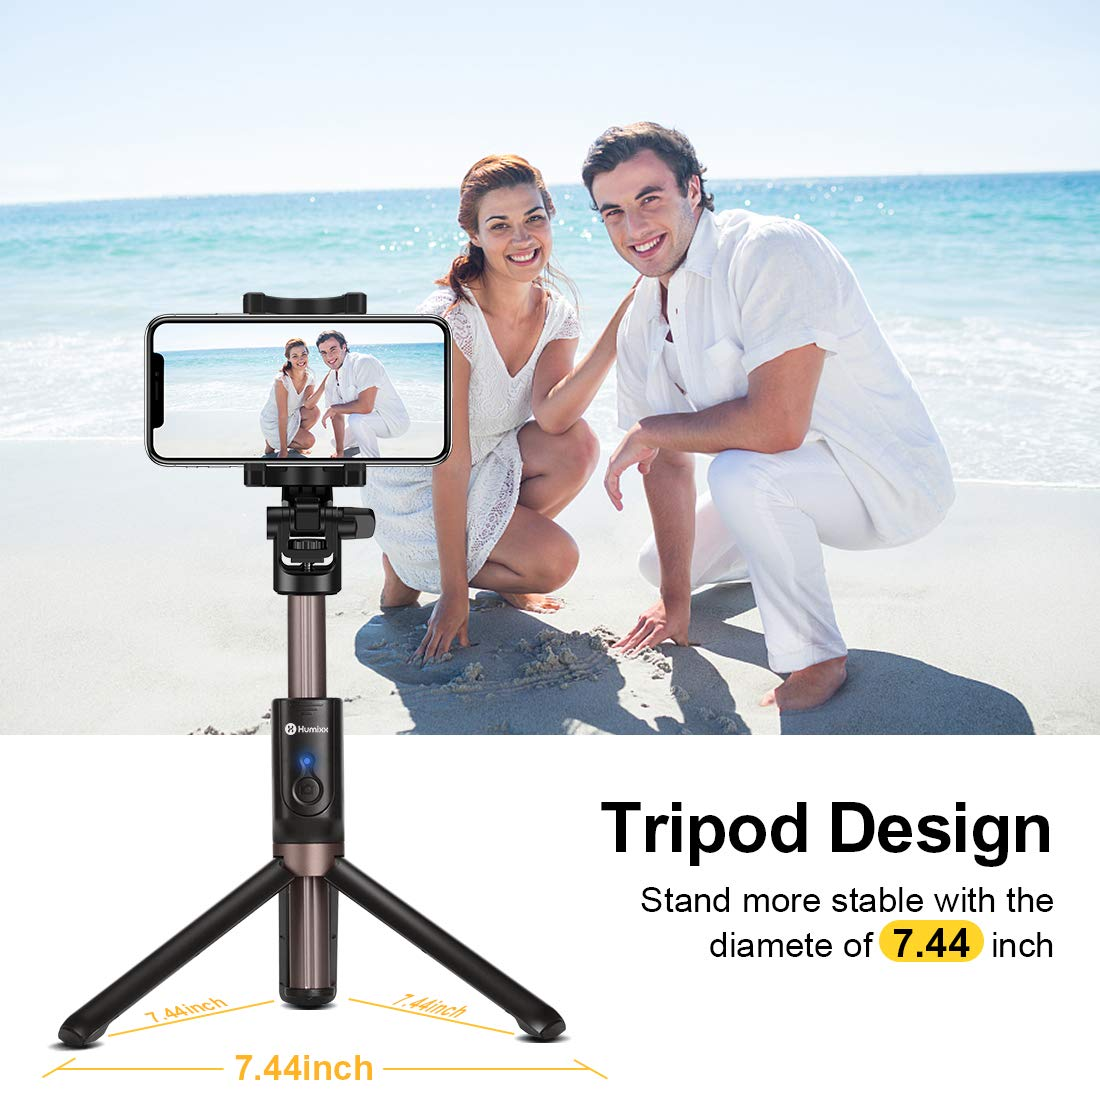 Humixx Selfie Stick, Buletooth 4-in-1 Extendable Selfie Stick Tripod 360° Rotation, Rechargeable Wireless Remote Shutter Compatible with iPhone XR/XS Max, Samsung S10+, Huawei P30, Go Pro and Cameras by Humixx (Image #4)